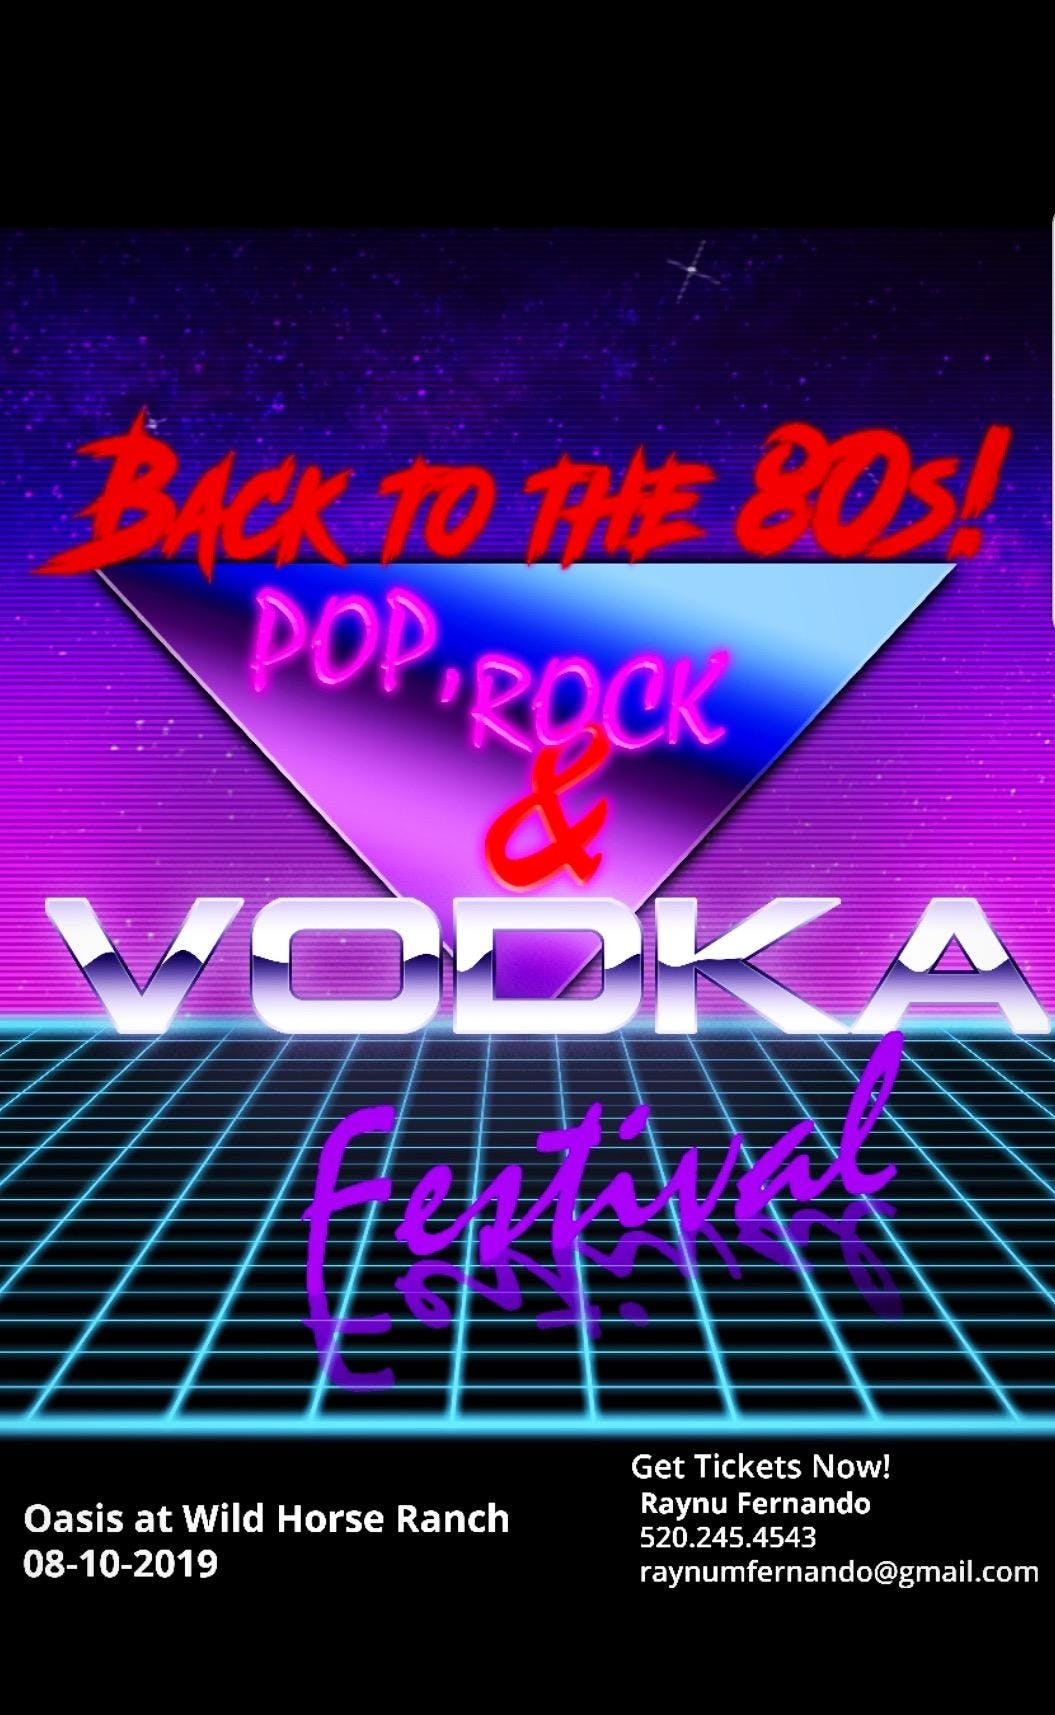 80s Pop Rock & Vodka Festival